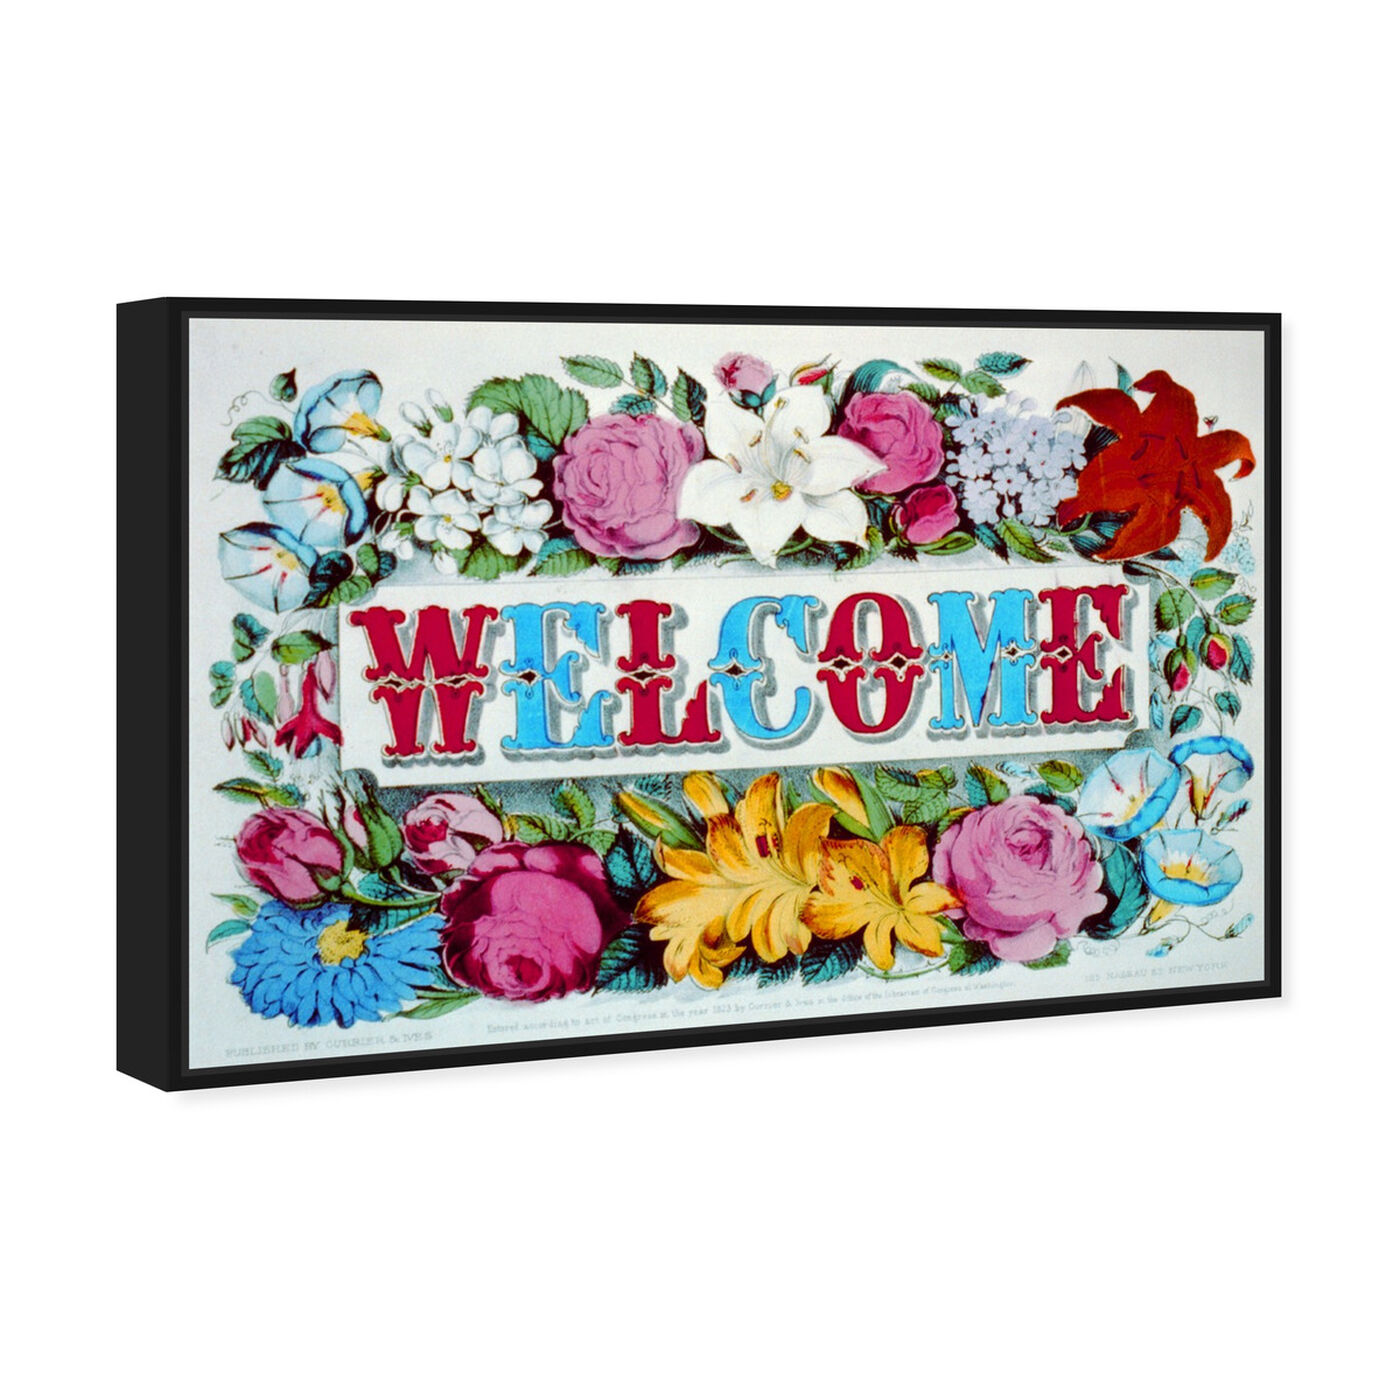 Angled view of Welcome featuring typography and quotes and family quotes and sayings art.